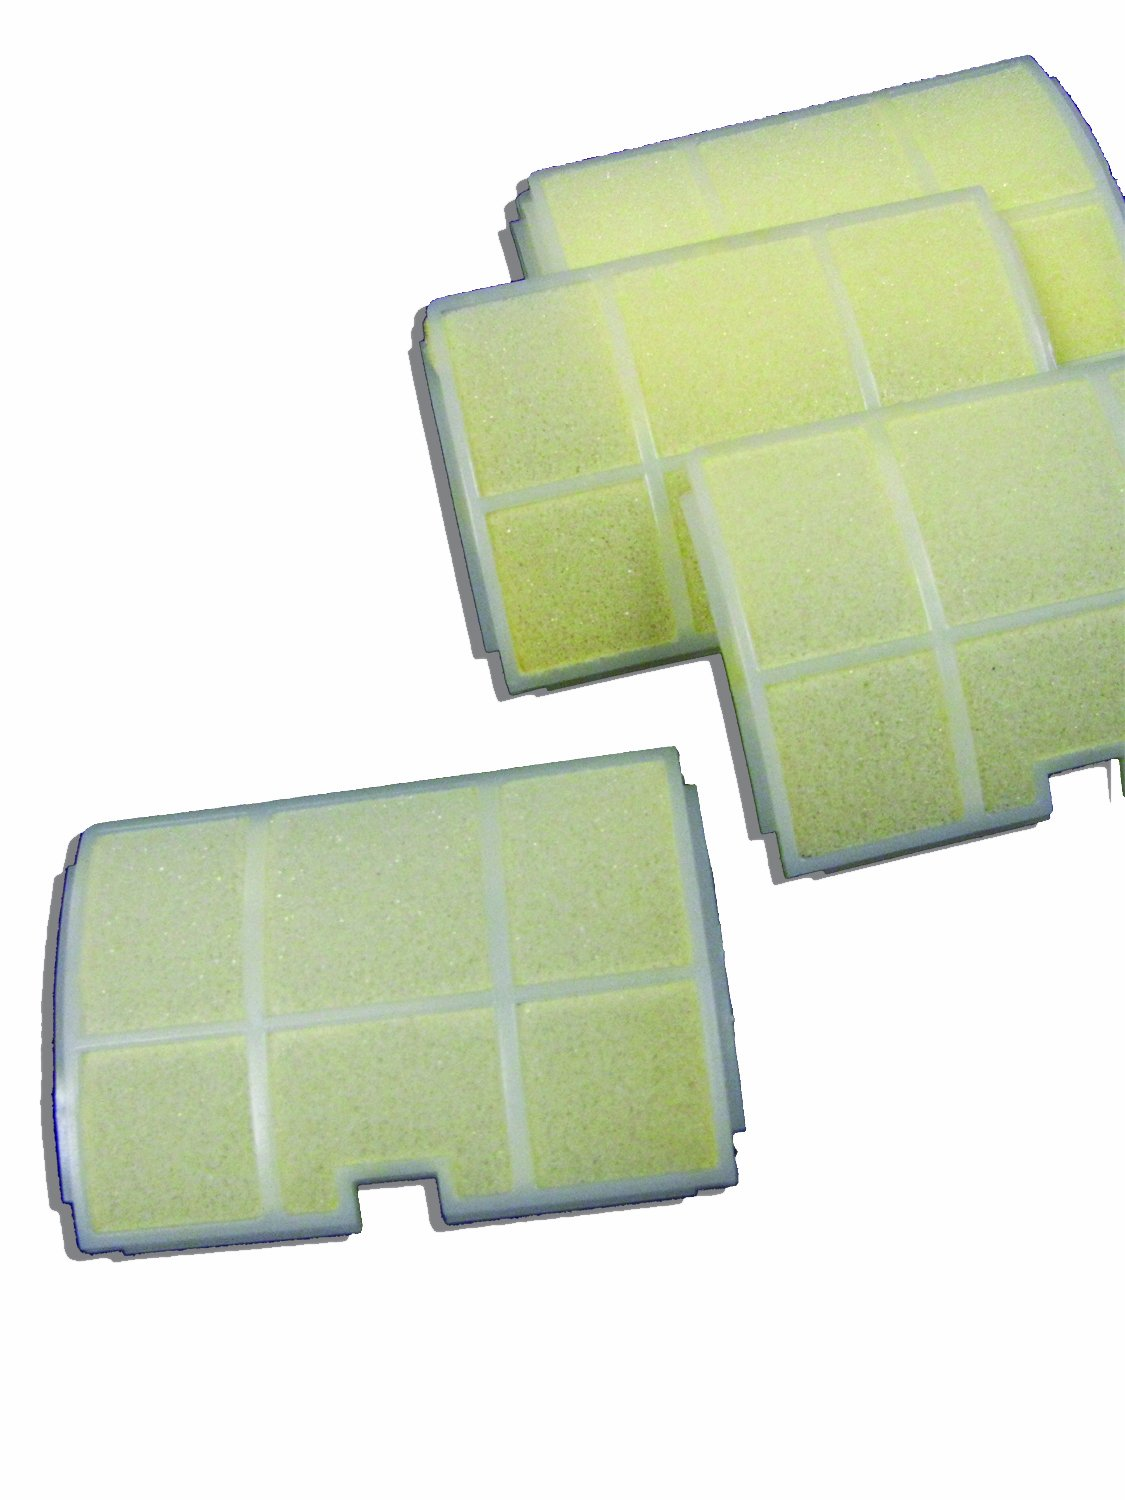 Green Klean GK-5143 Replacement Exhaust Filter (Pack of 50)